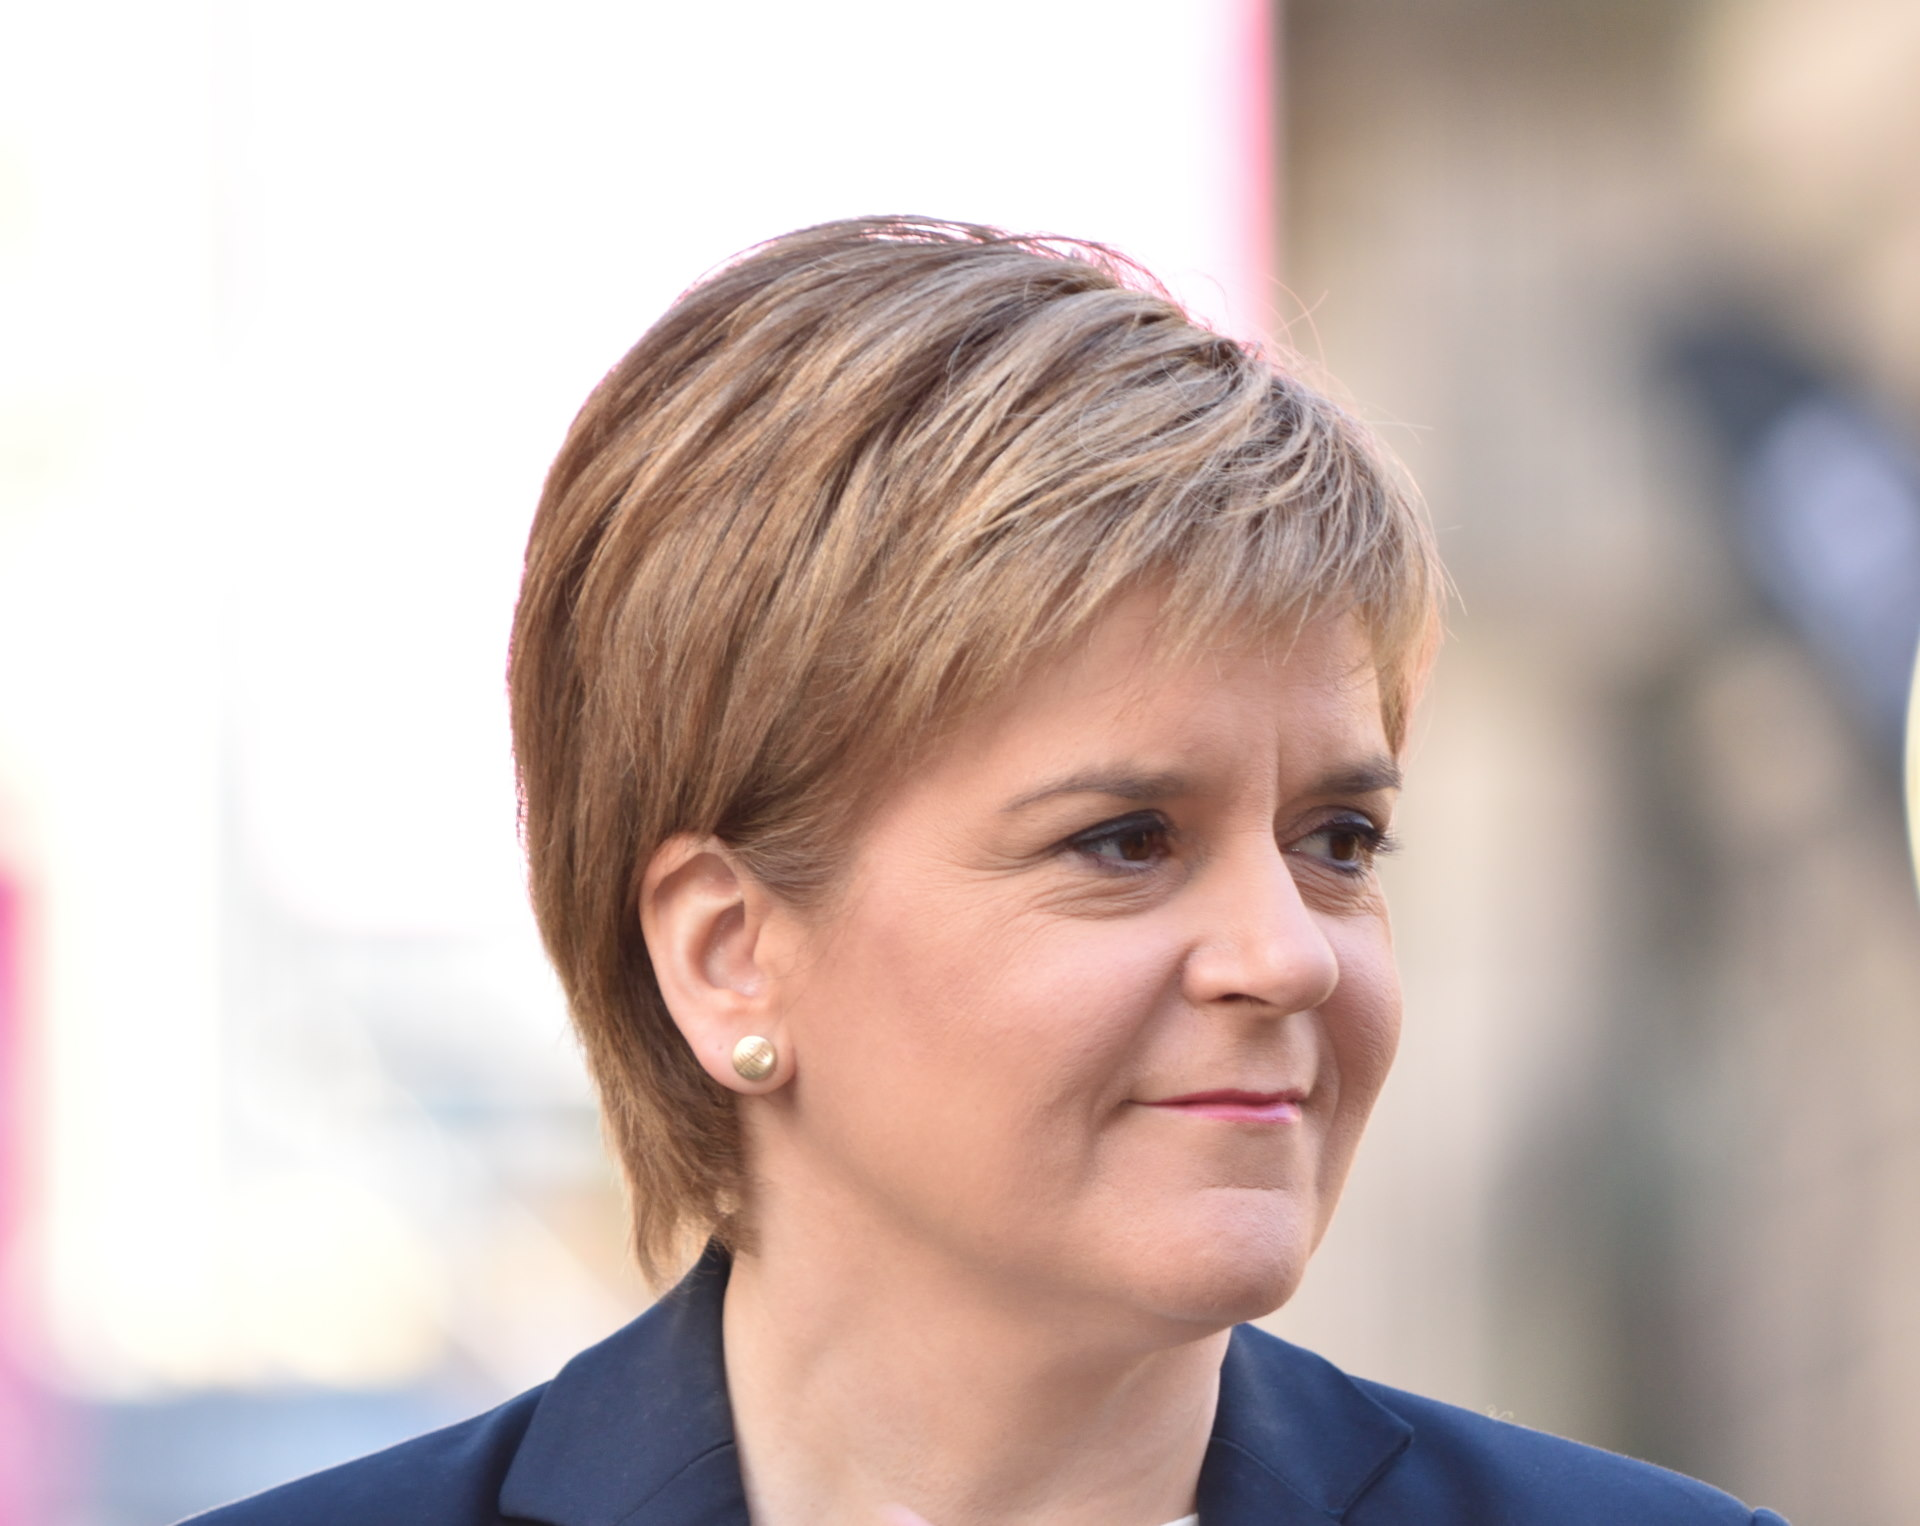 SNP leader Sturgeon vows independence vote after election success